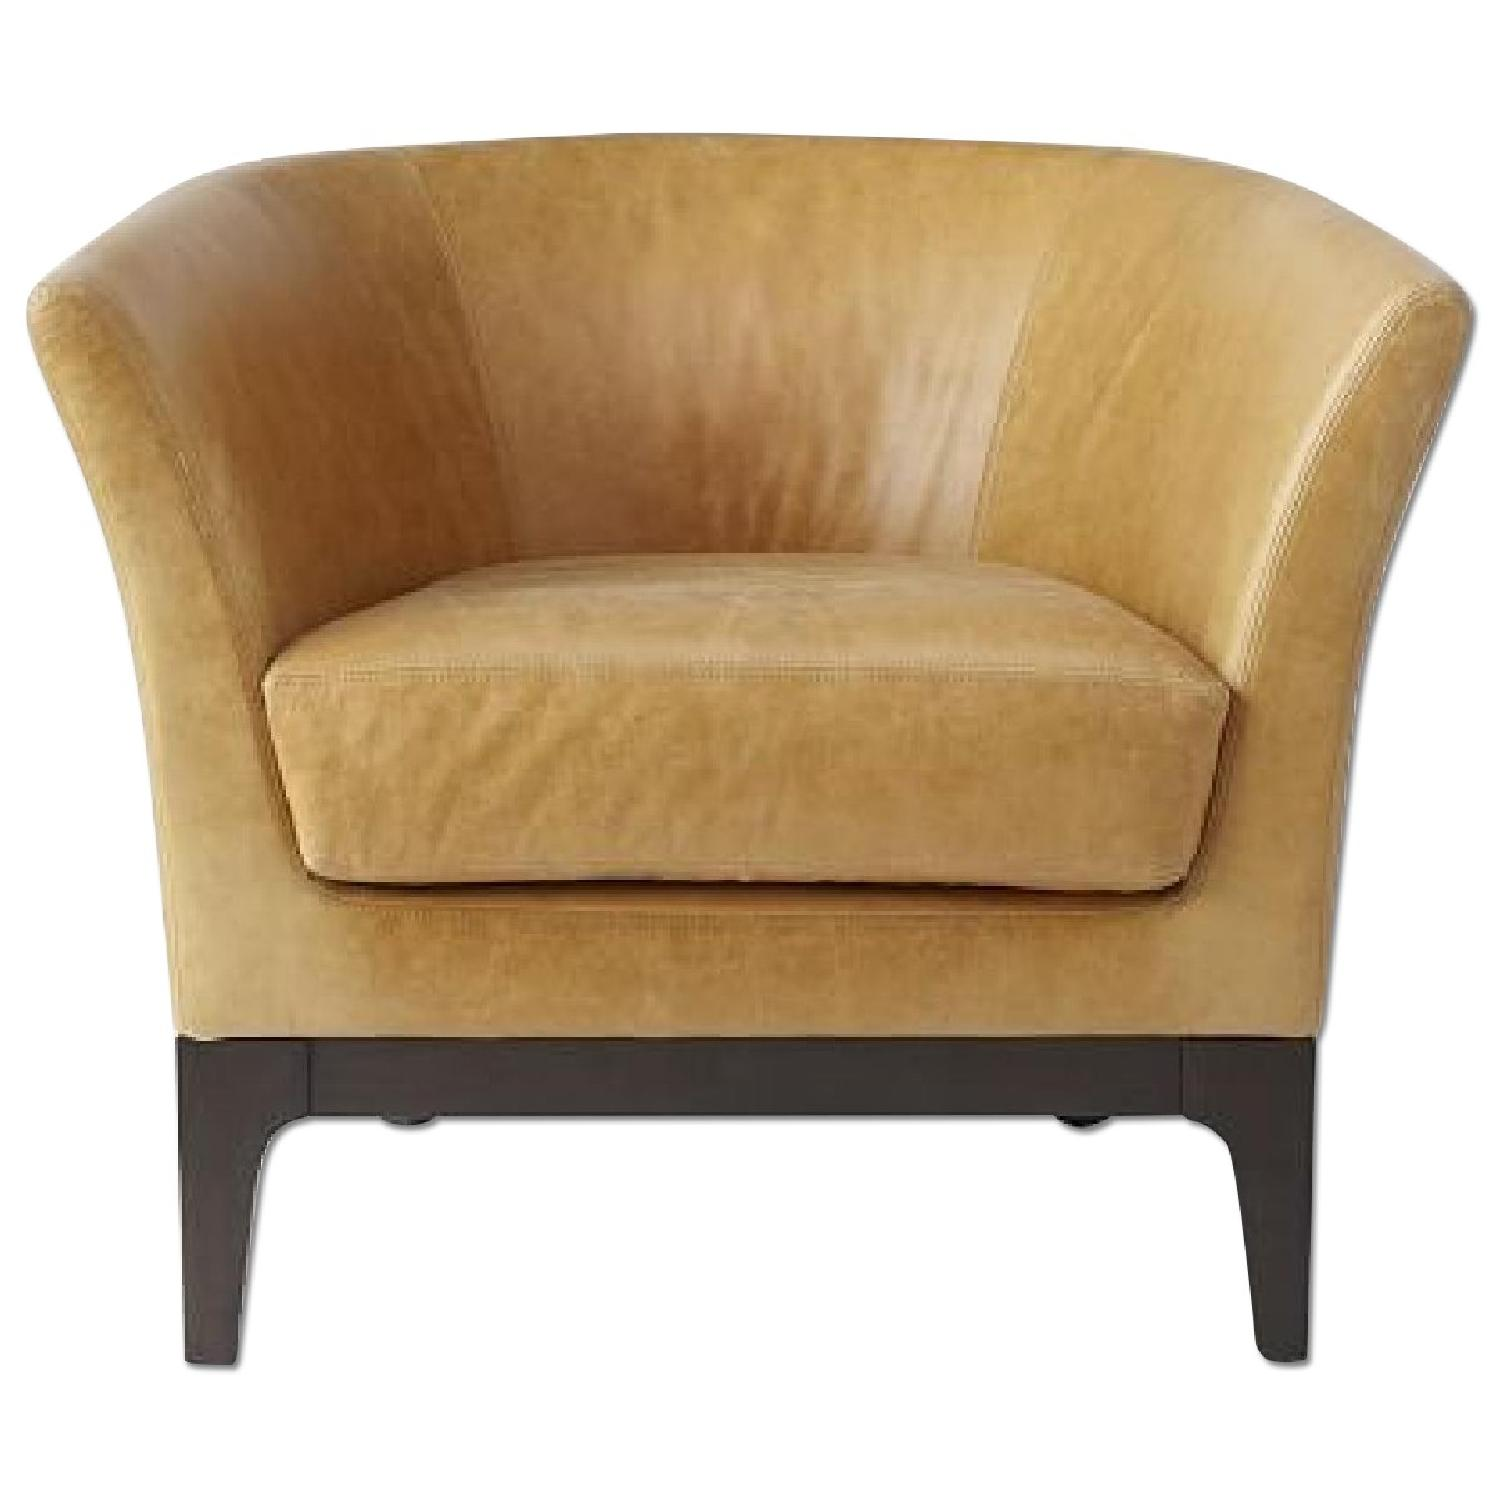 West Elm Tulip Leather Chair AptDeco